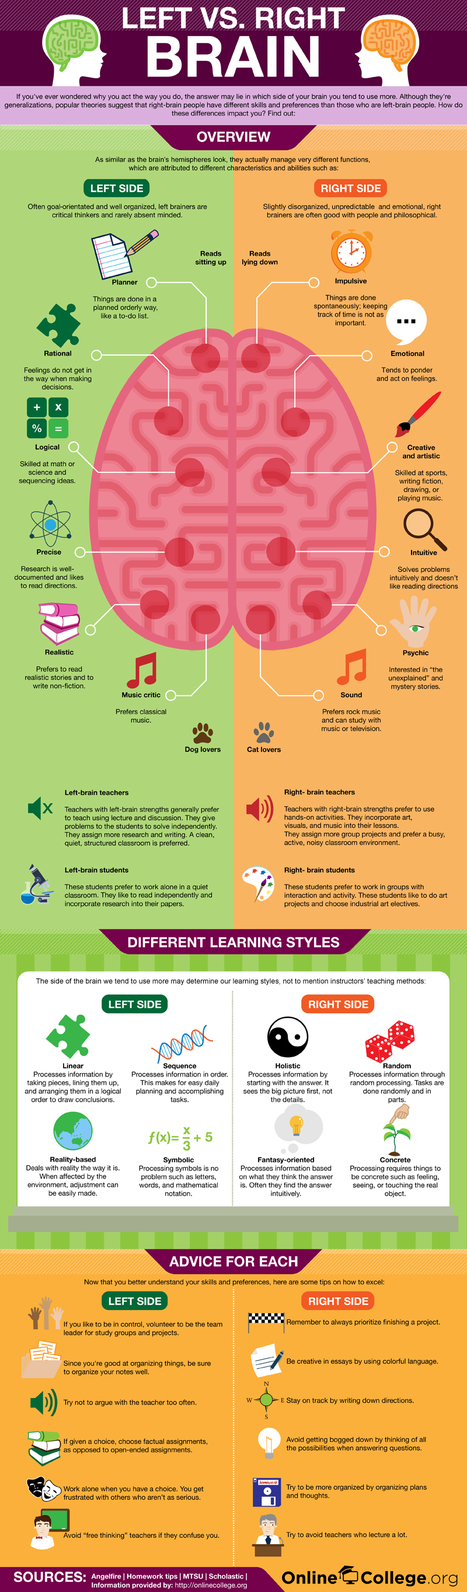 Are You Left or Right Brain? [Infographic] | Wall Of Frames | Scoop.it